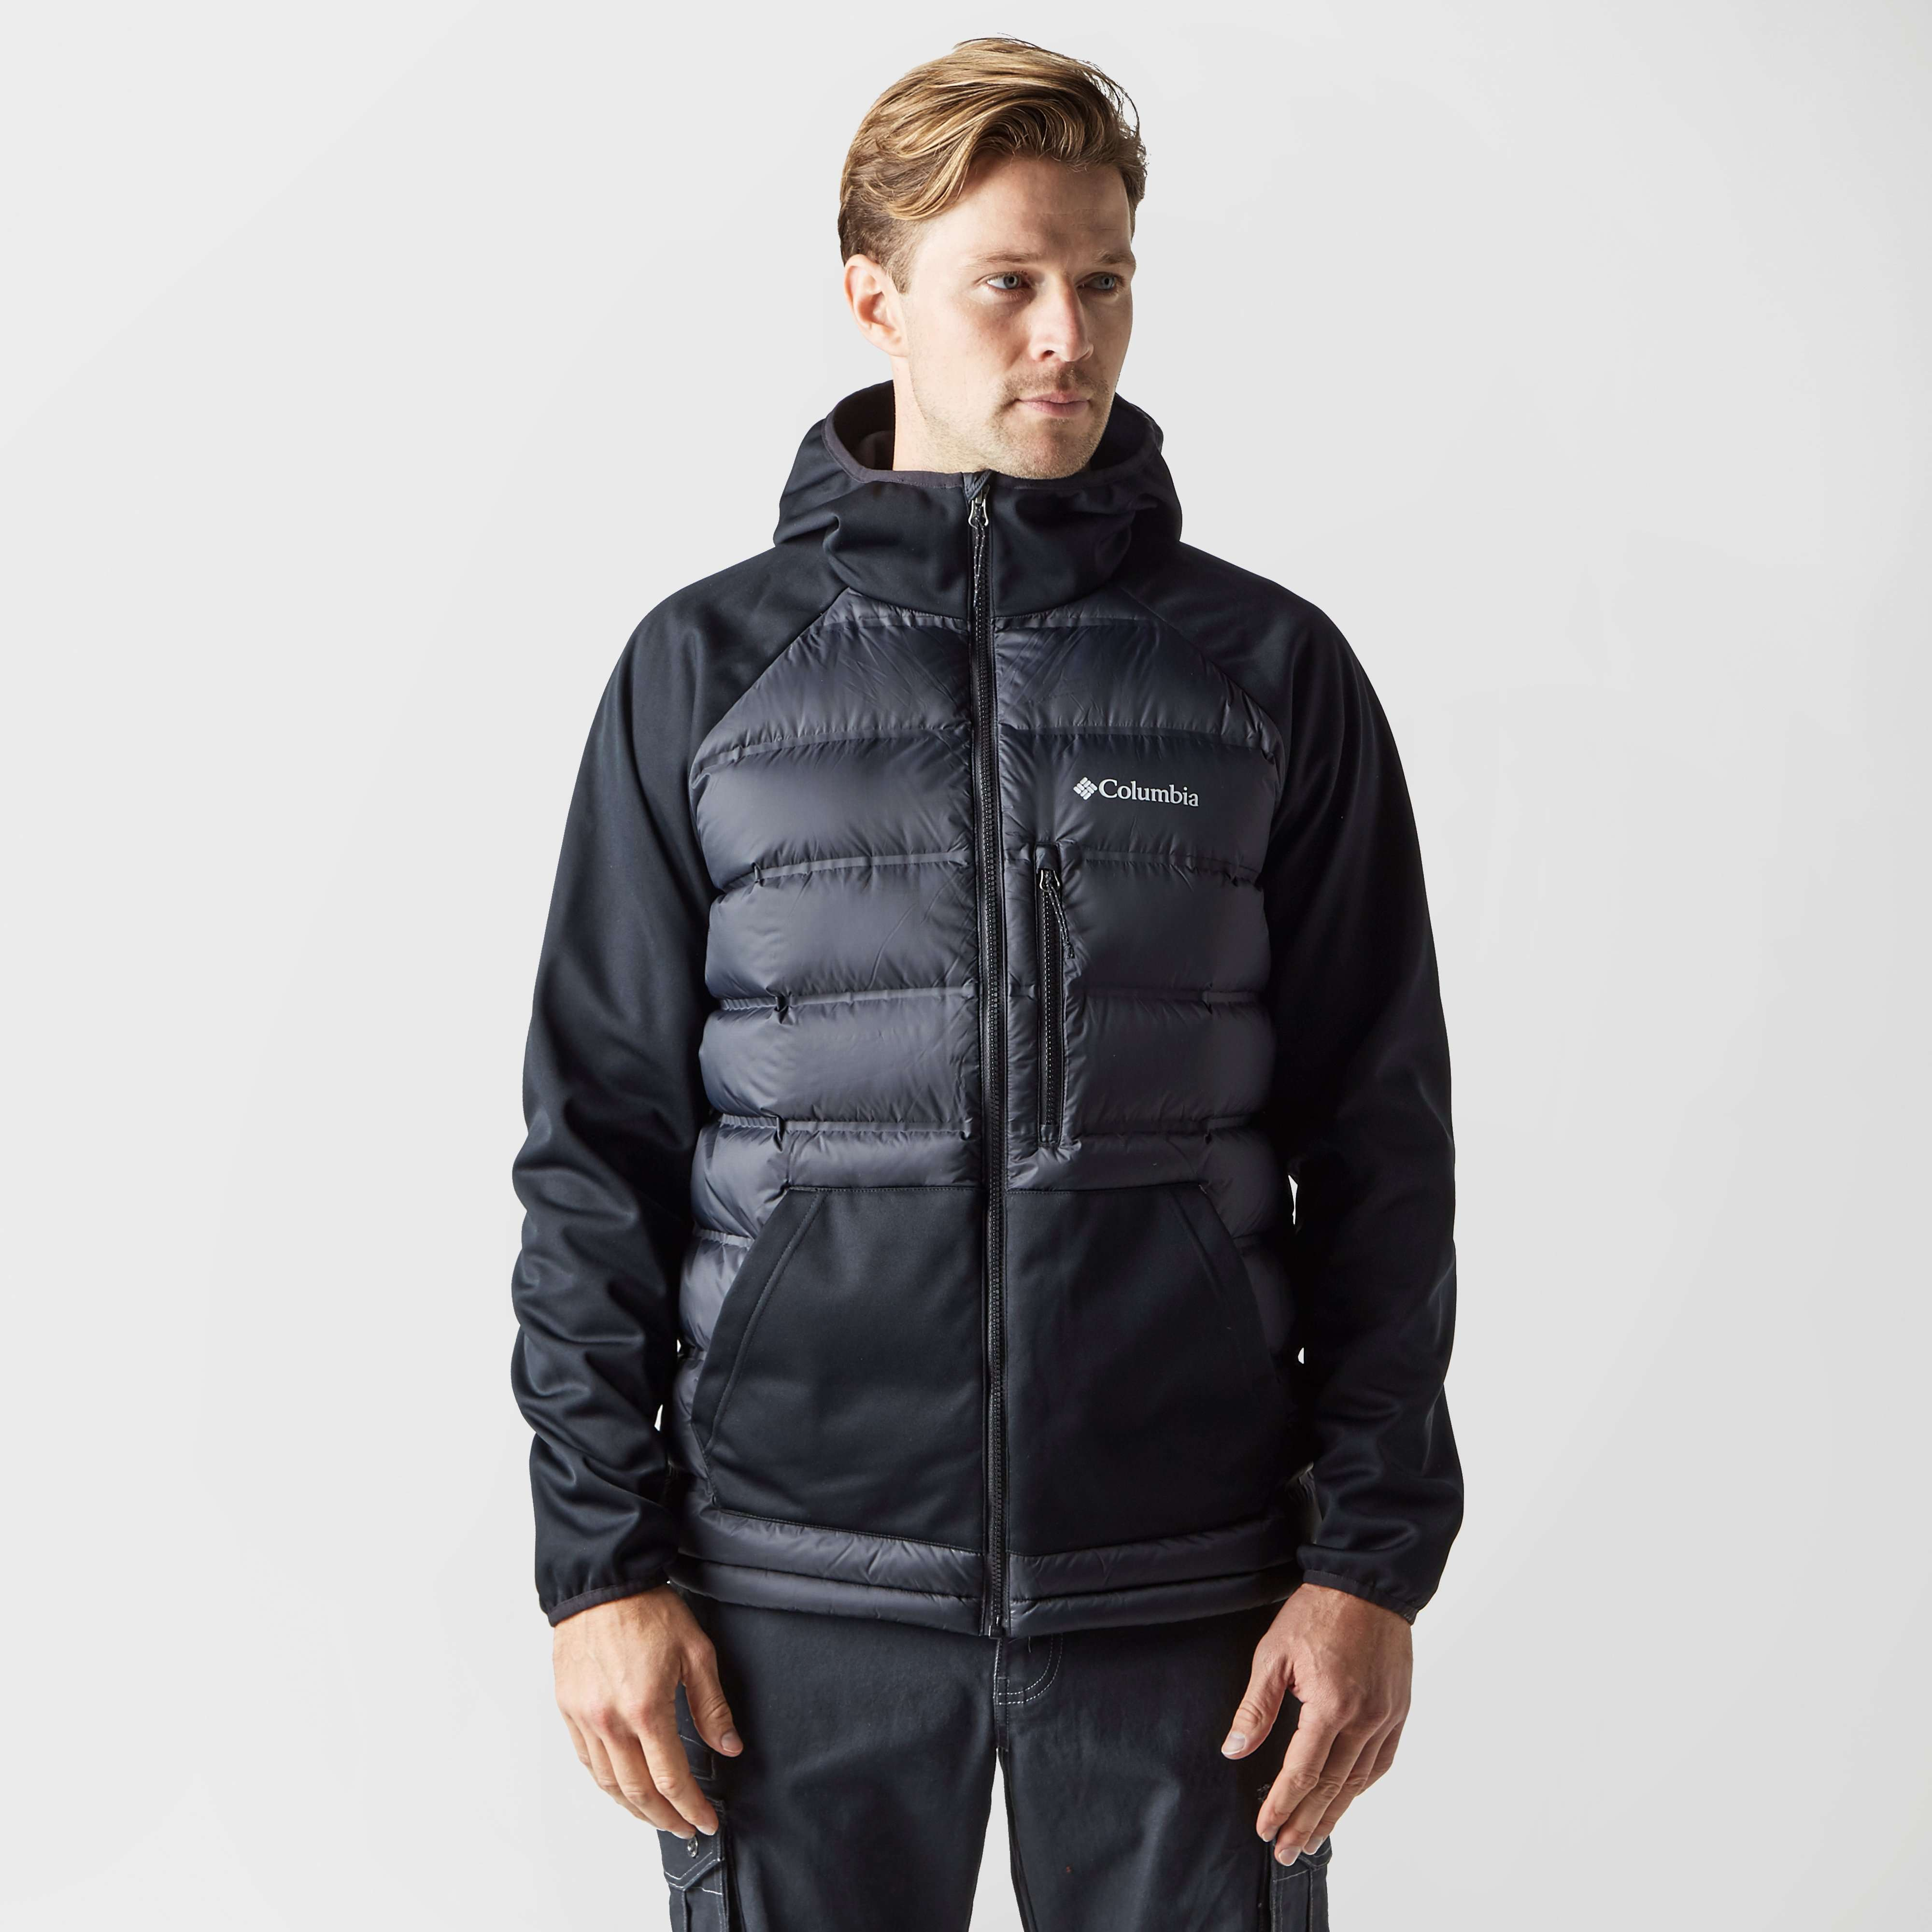 COLUMBIA Men's Ramble™ Down Hybrid Hooded Jacket